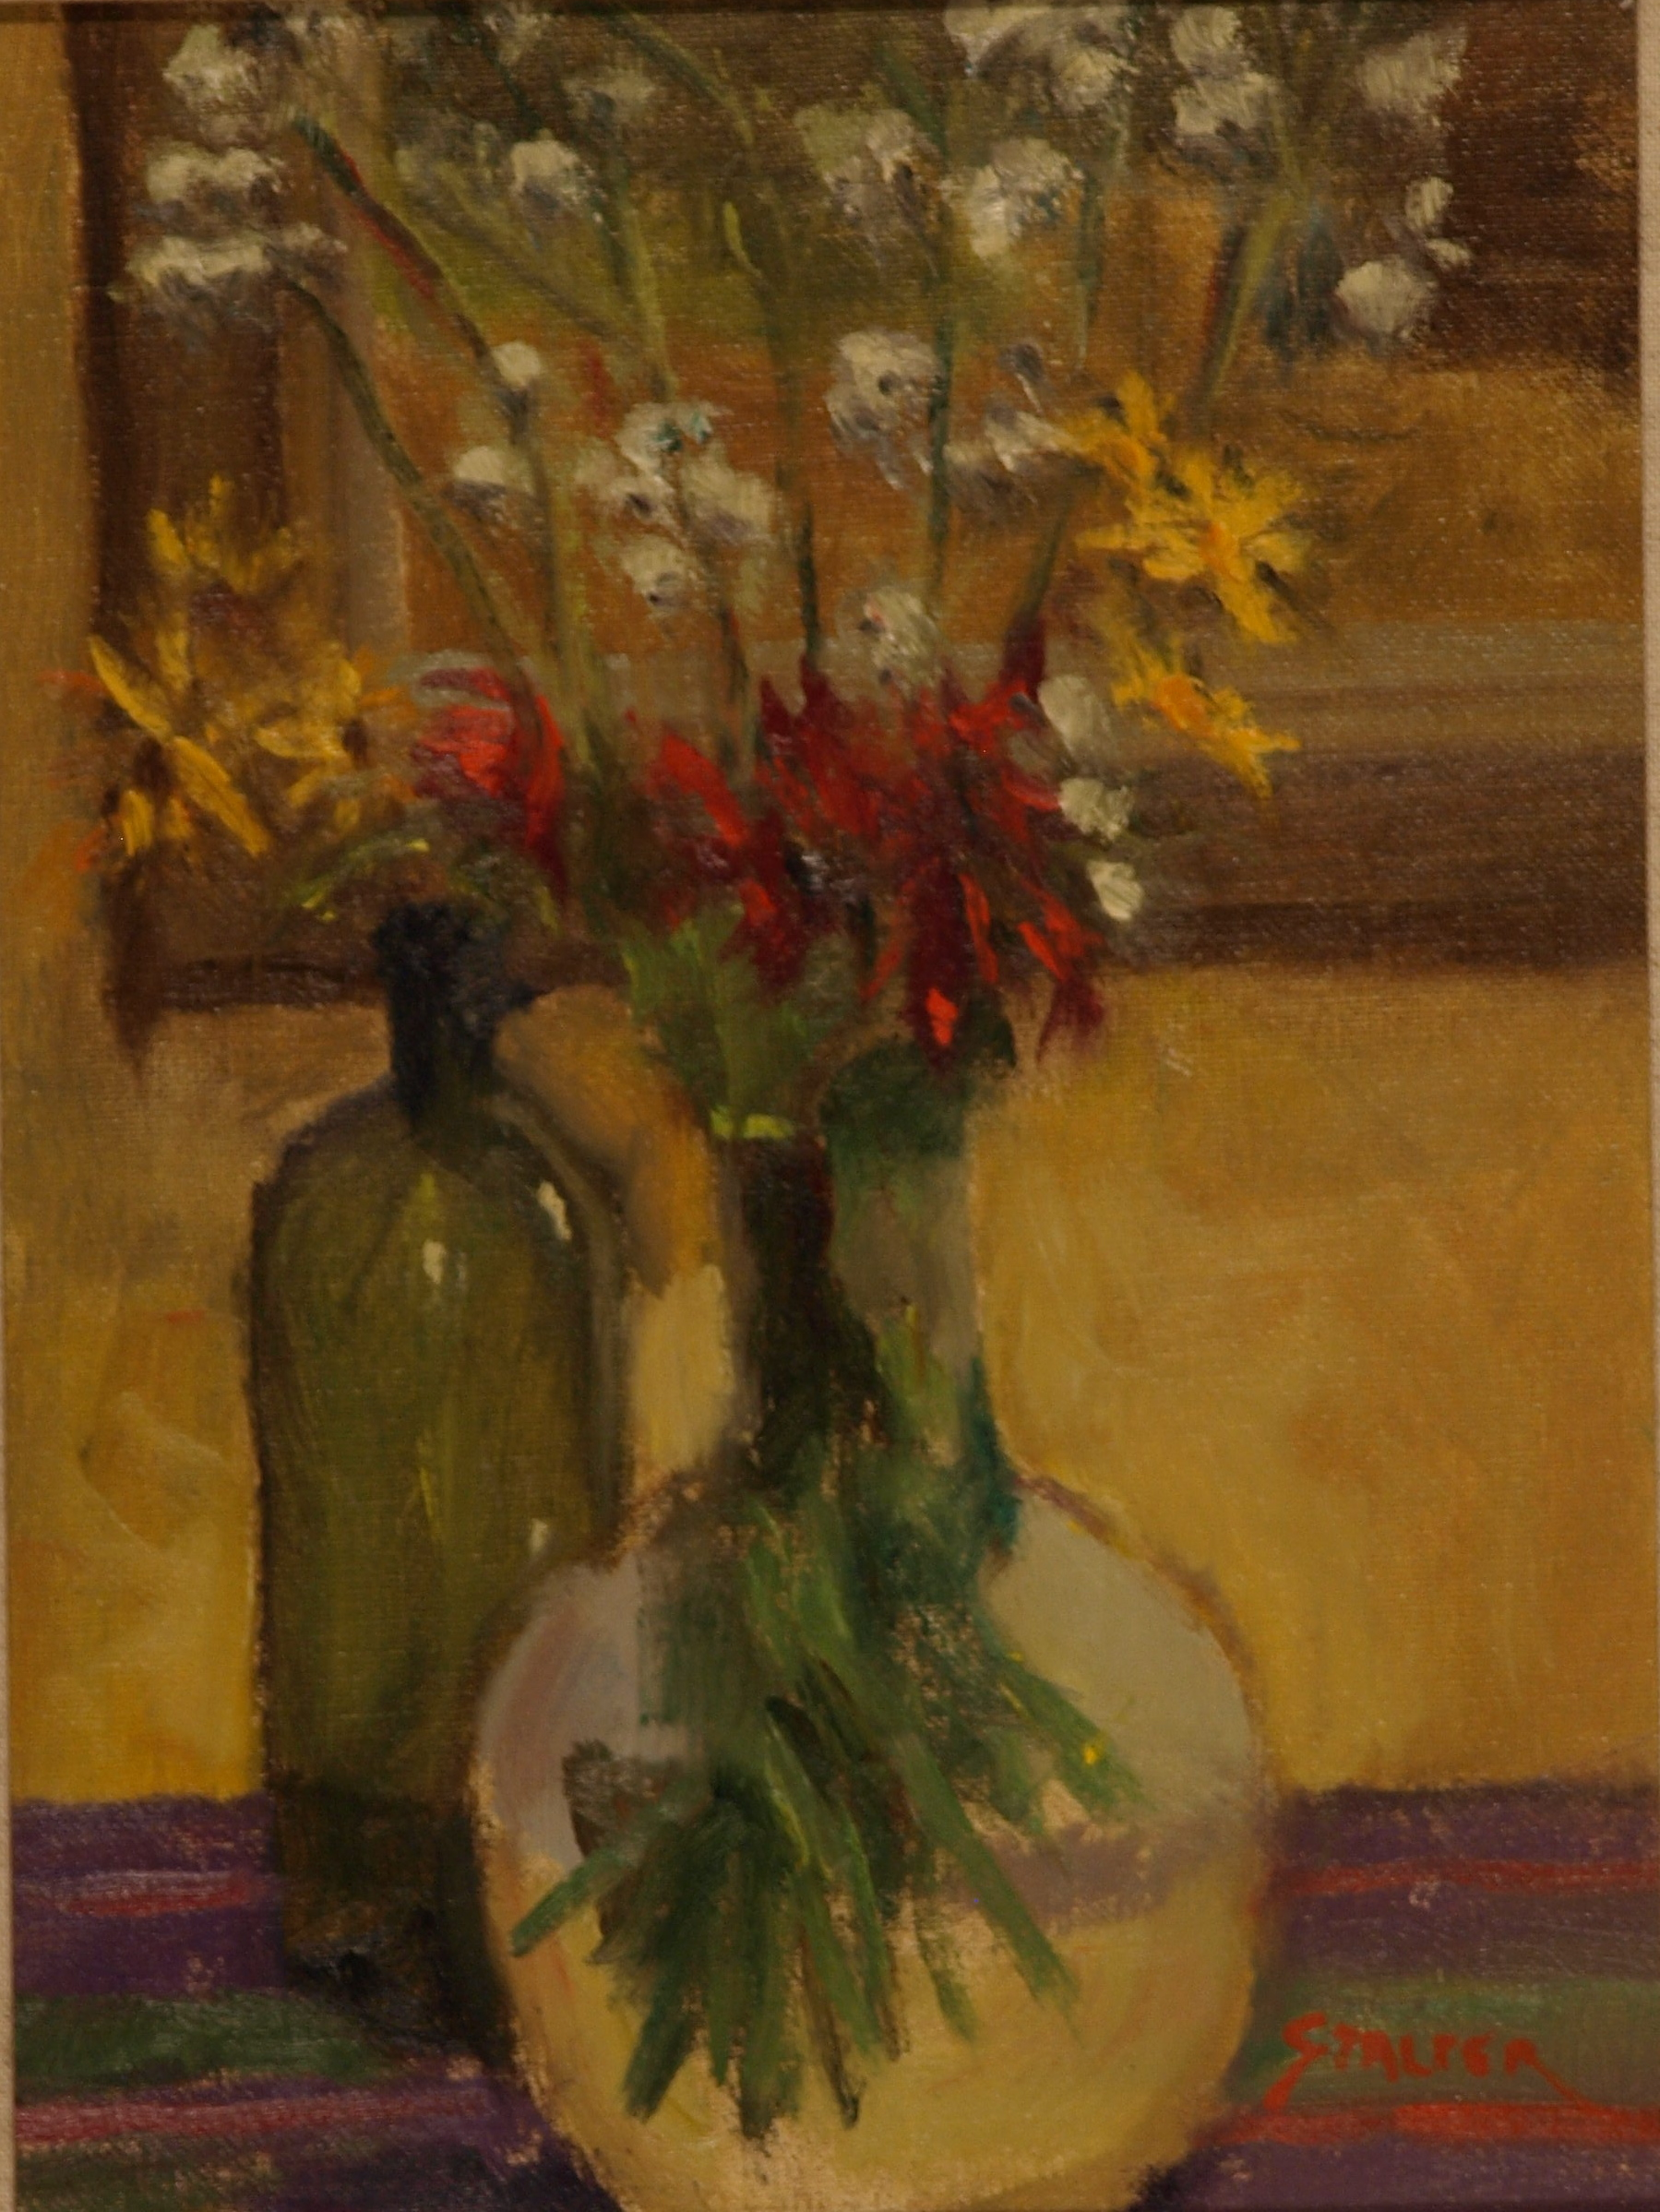 Still Life - Green Bottle, Oil on Canvas on Panel, 12 x 9 Inches, by Richard Stalter, $225